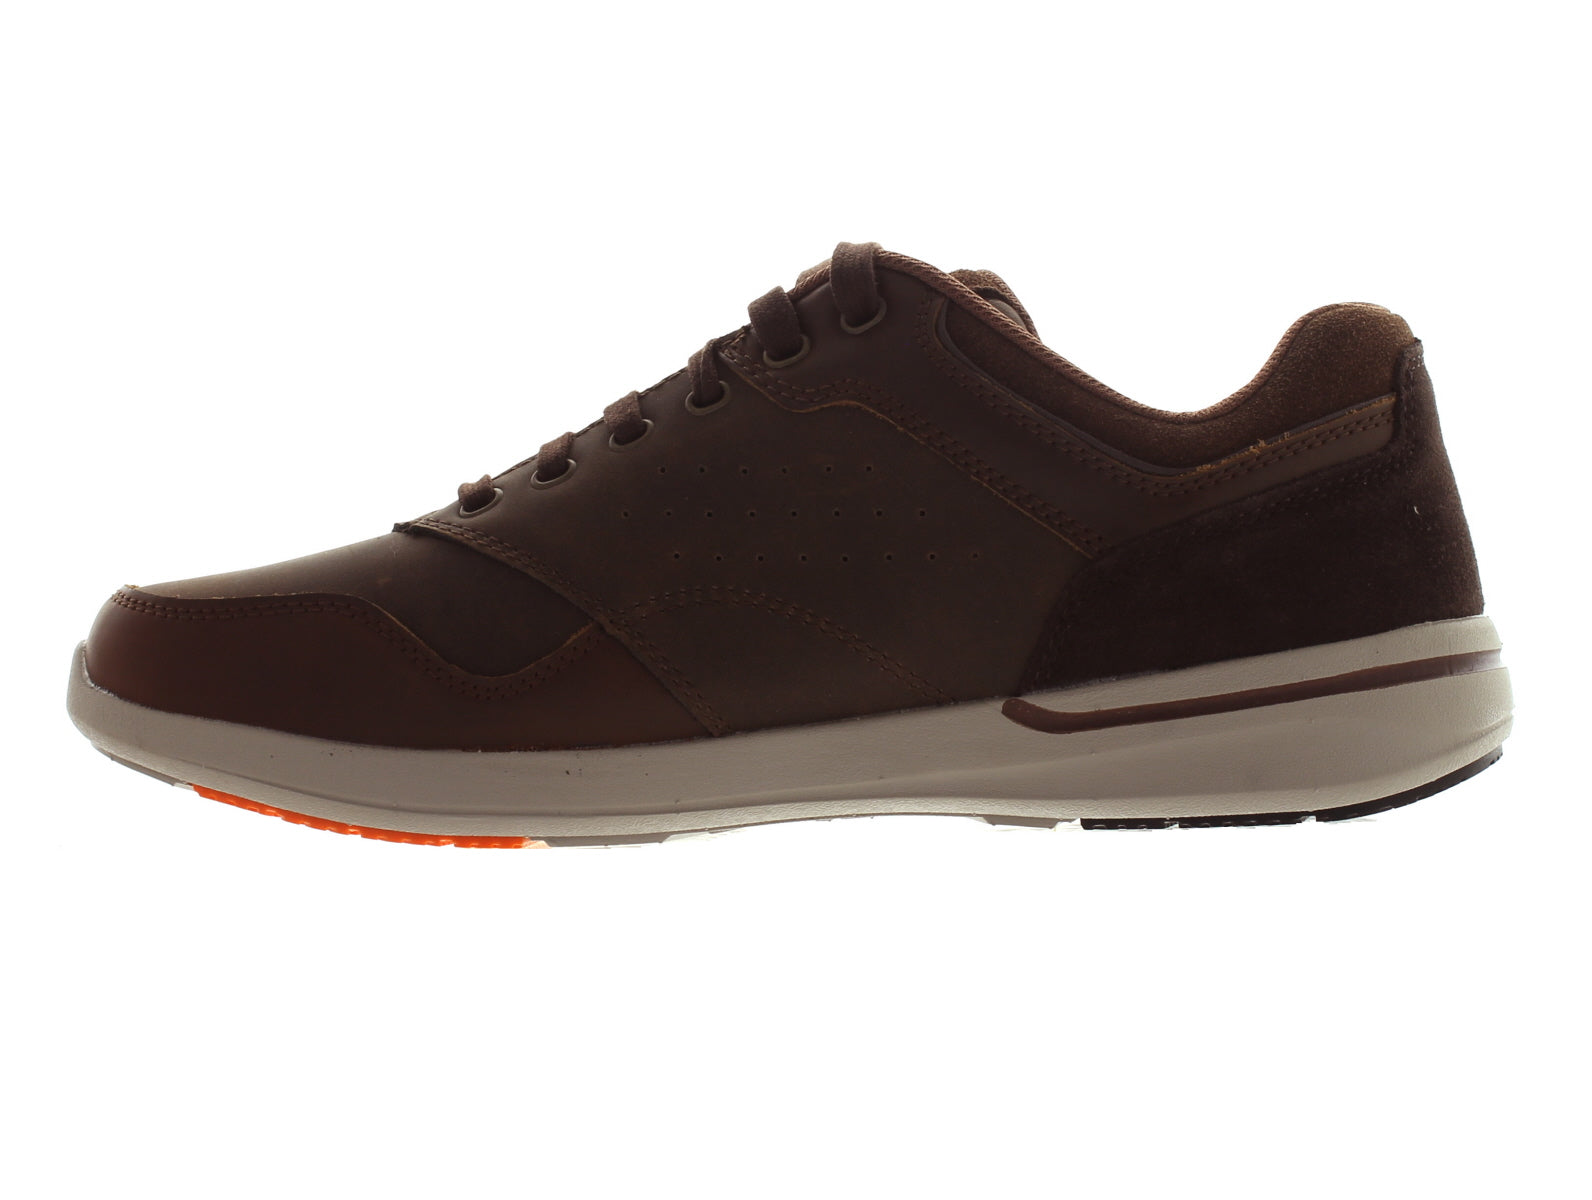 Skechers Relaxed Fit 65406 in Brown inner view